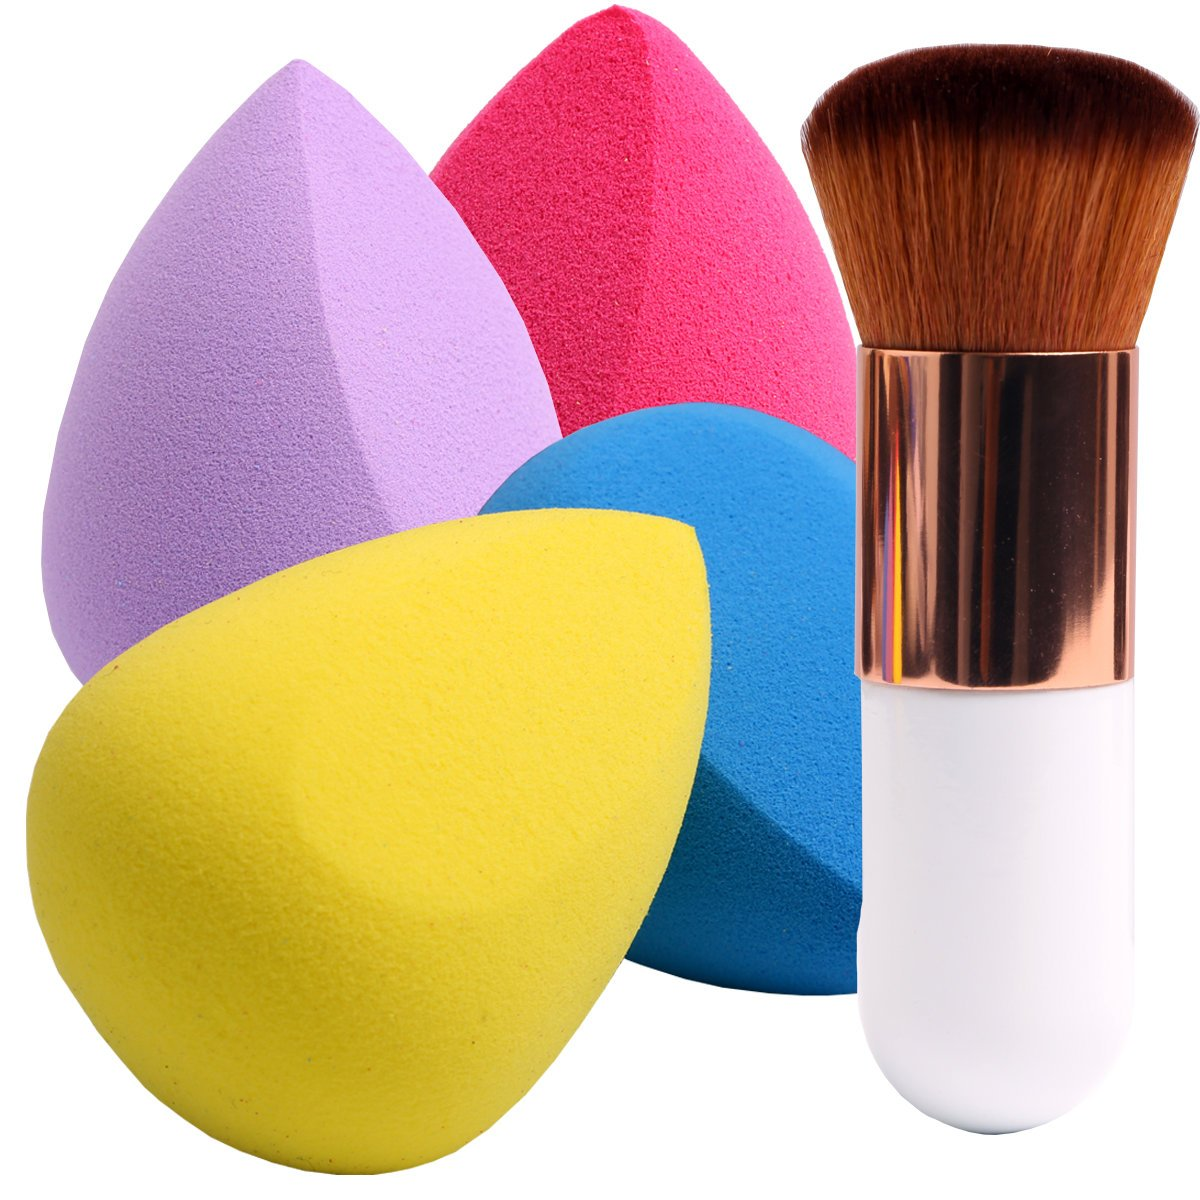 BEAKEY 4+1Pcs Makeup Sponges Set Blender Beauty with Blush Brush, Foundation Blending Sponge,Flawless for Liquid, Creams and Powders,Powder Puffs & Kabuki Brushes